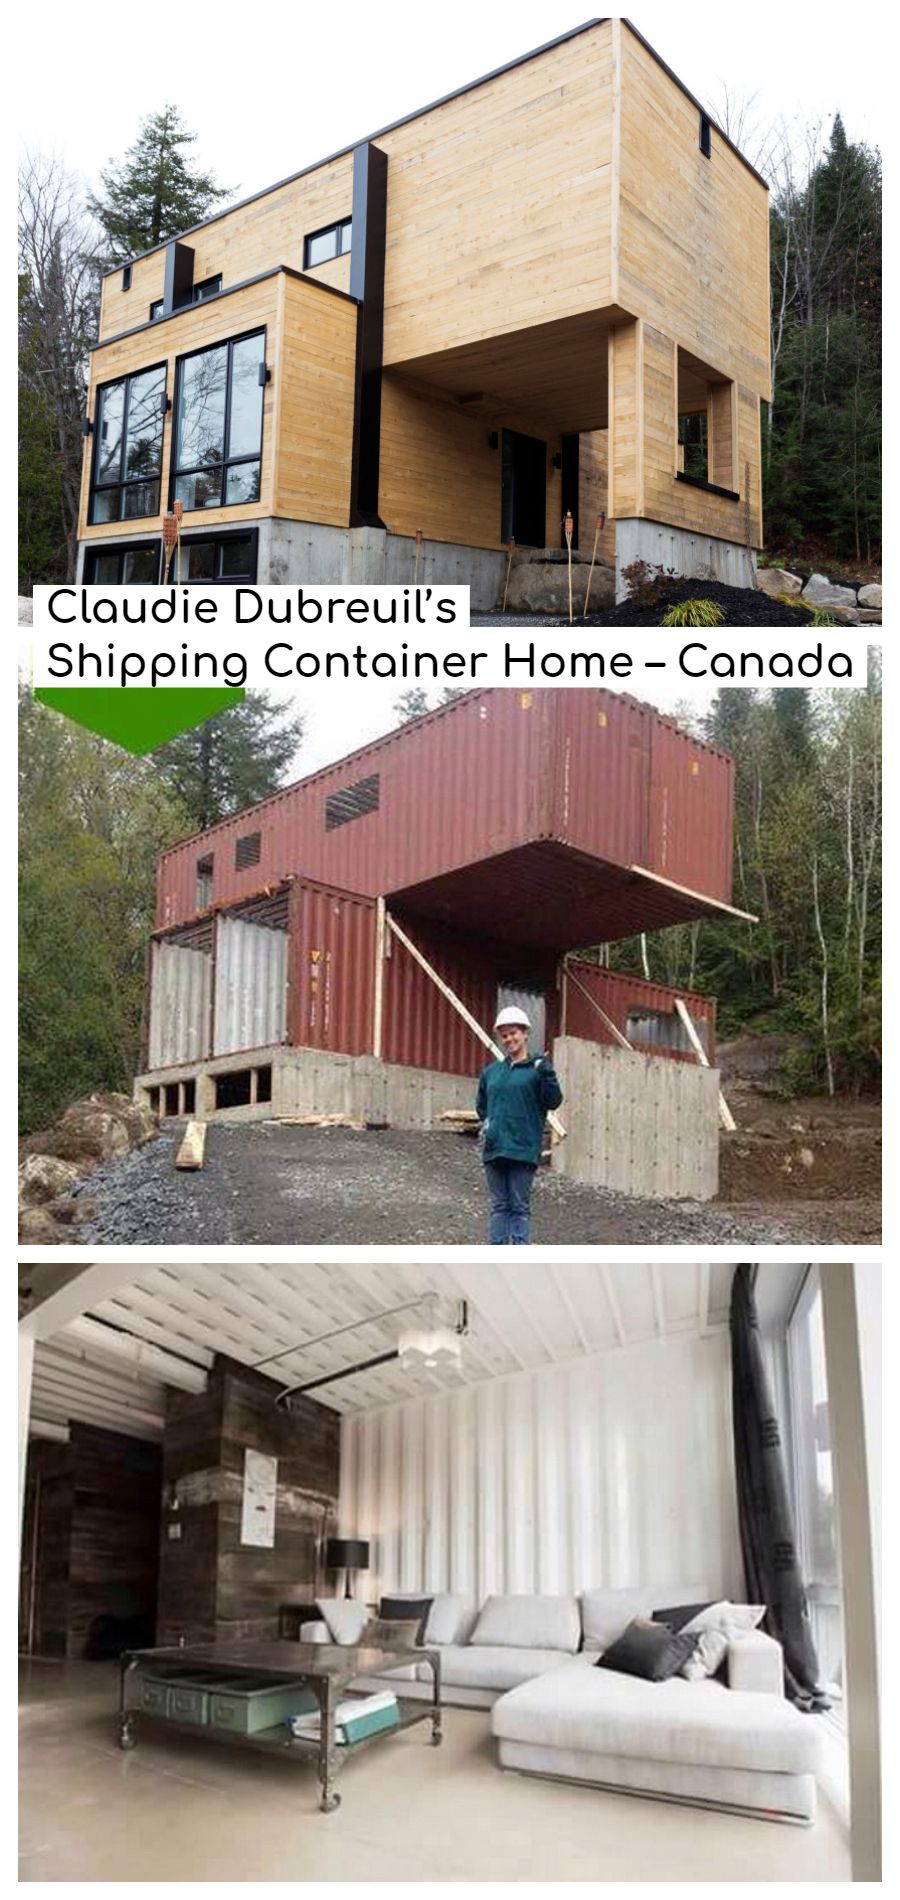 Claudie Dubreuil S Shipping Container Home Canada Container House Container House Plans Shipping Container Home Designs